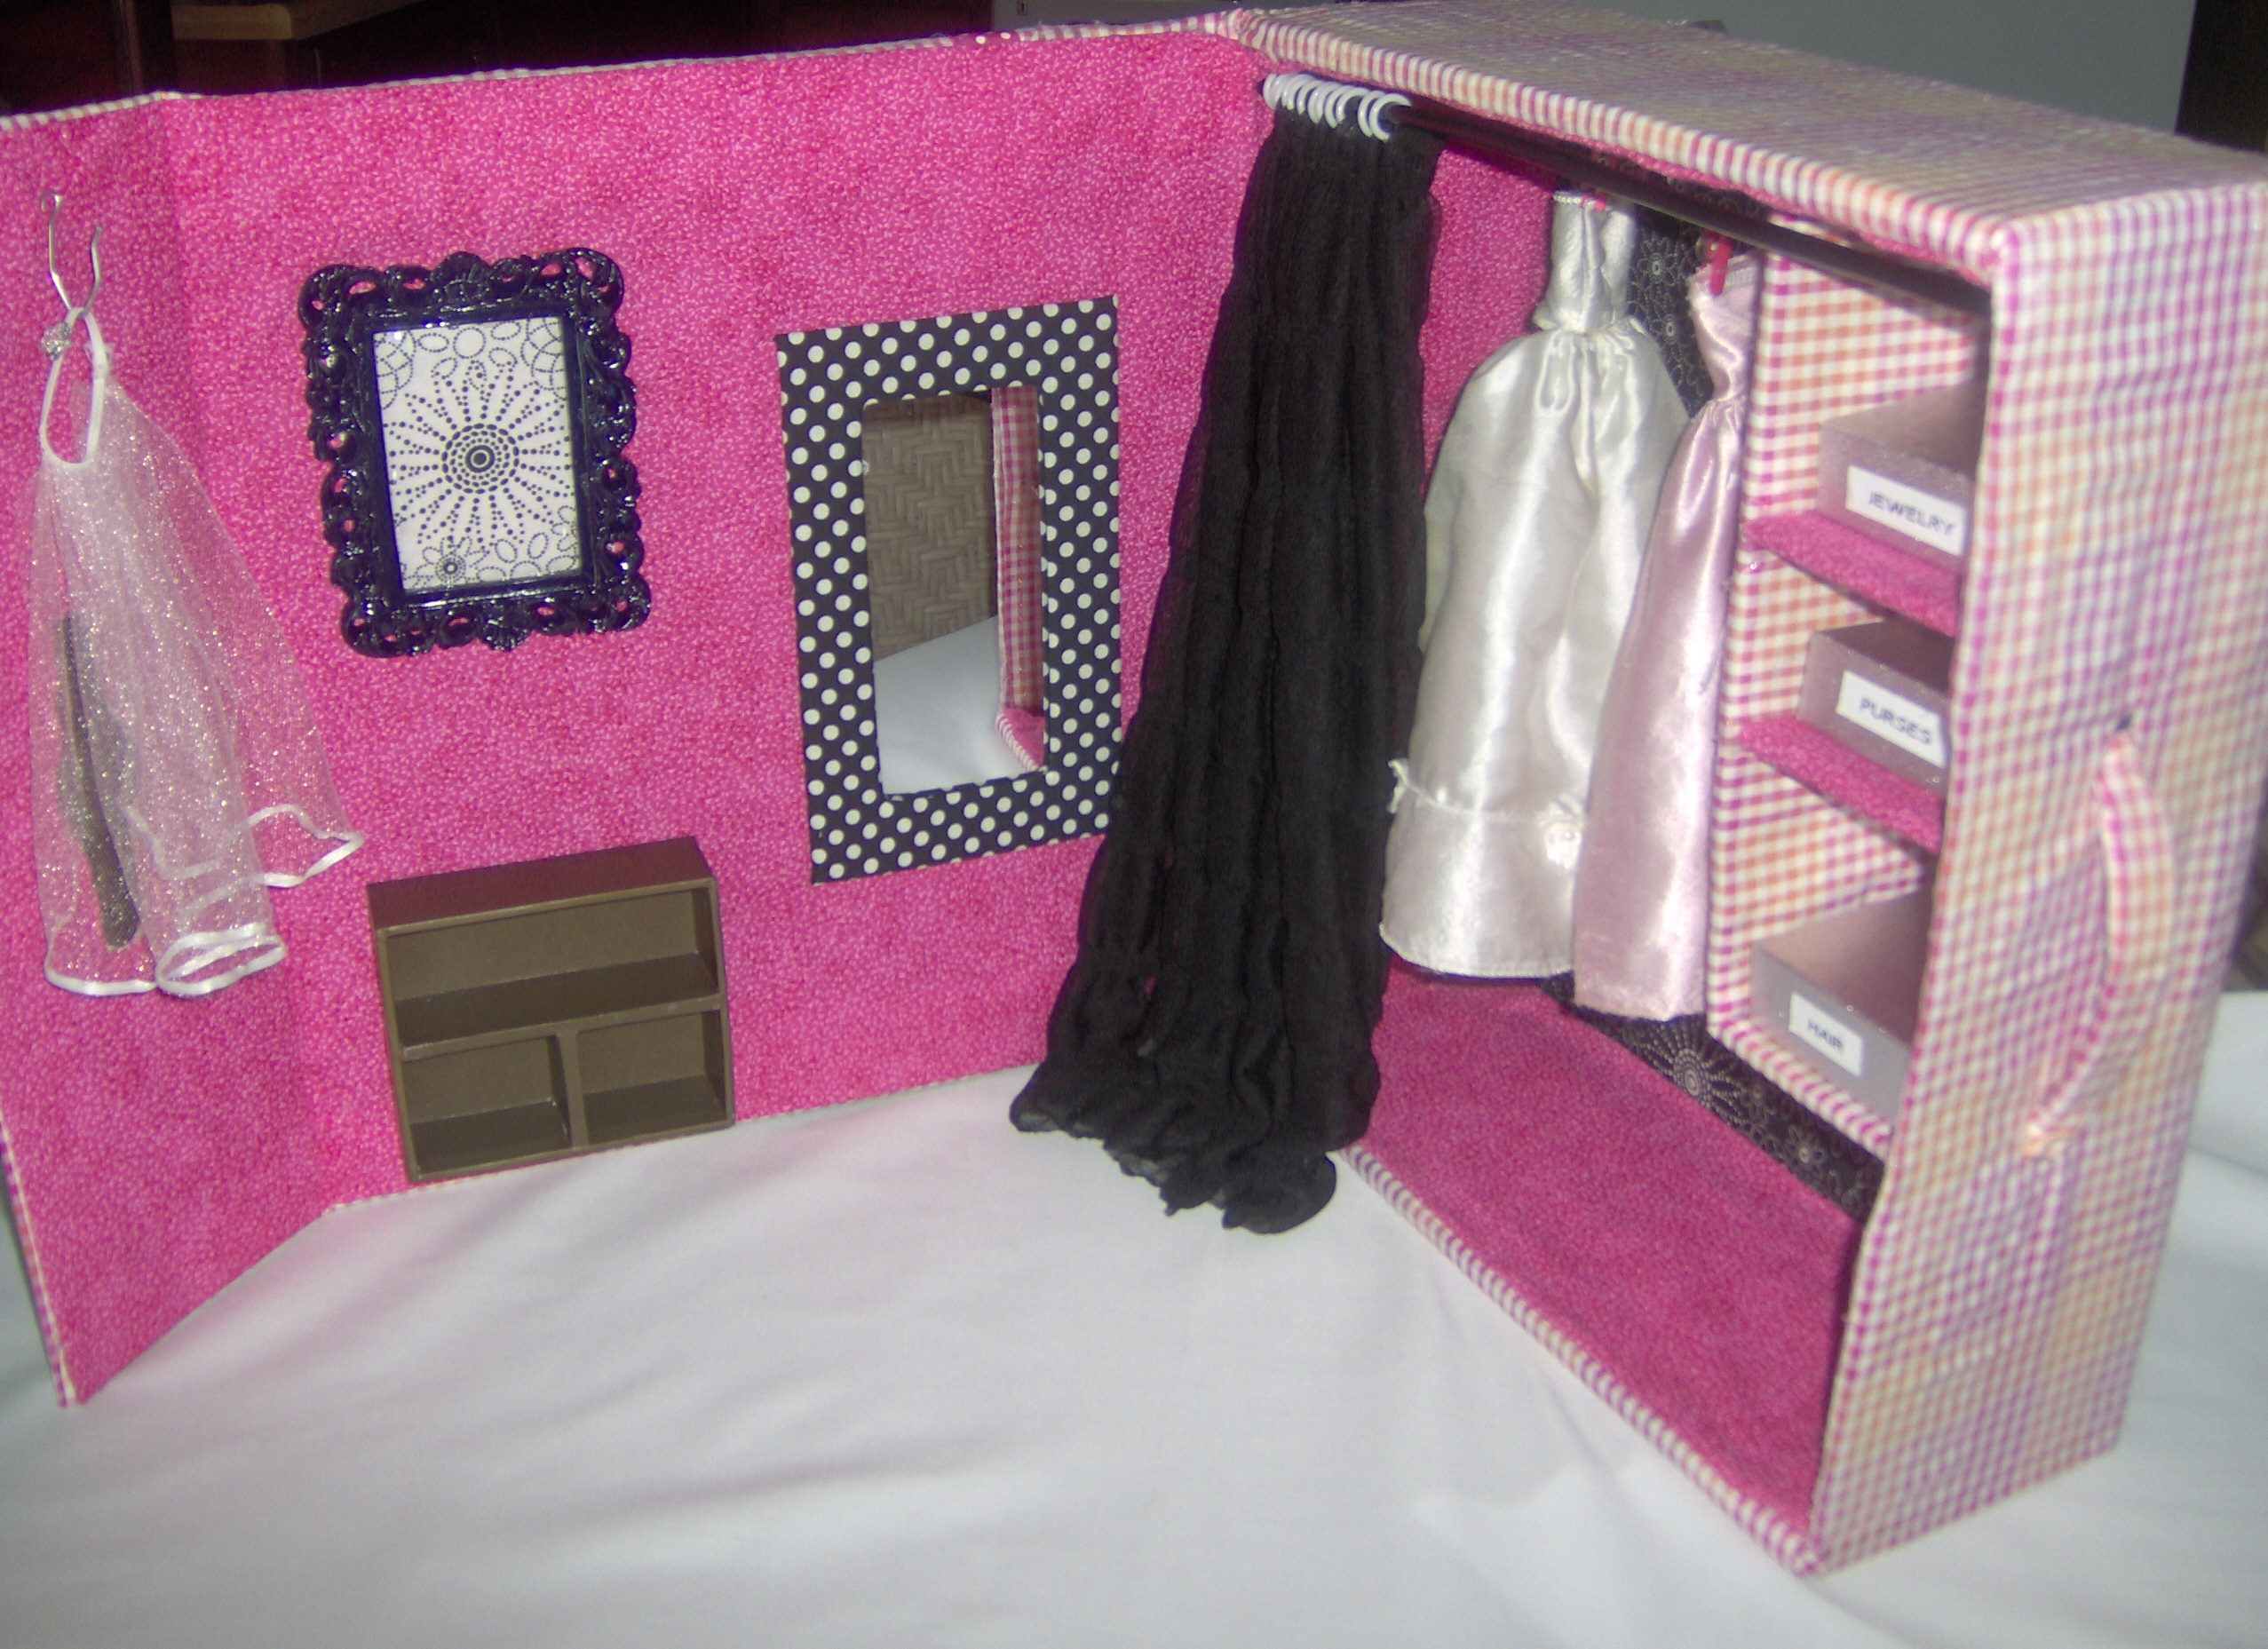 Barbie Bedroom In A Box: Barbie Dream Closet DIY